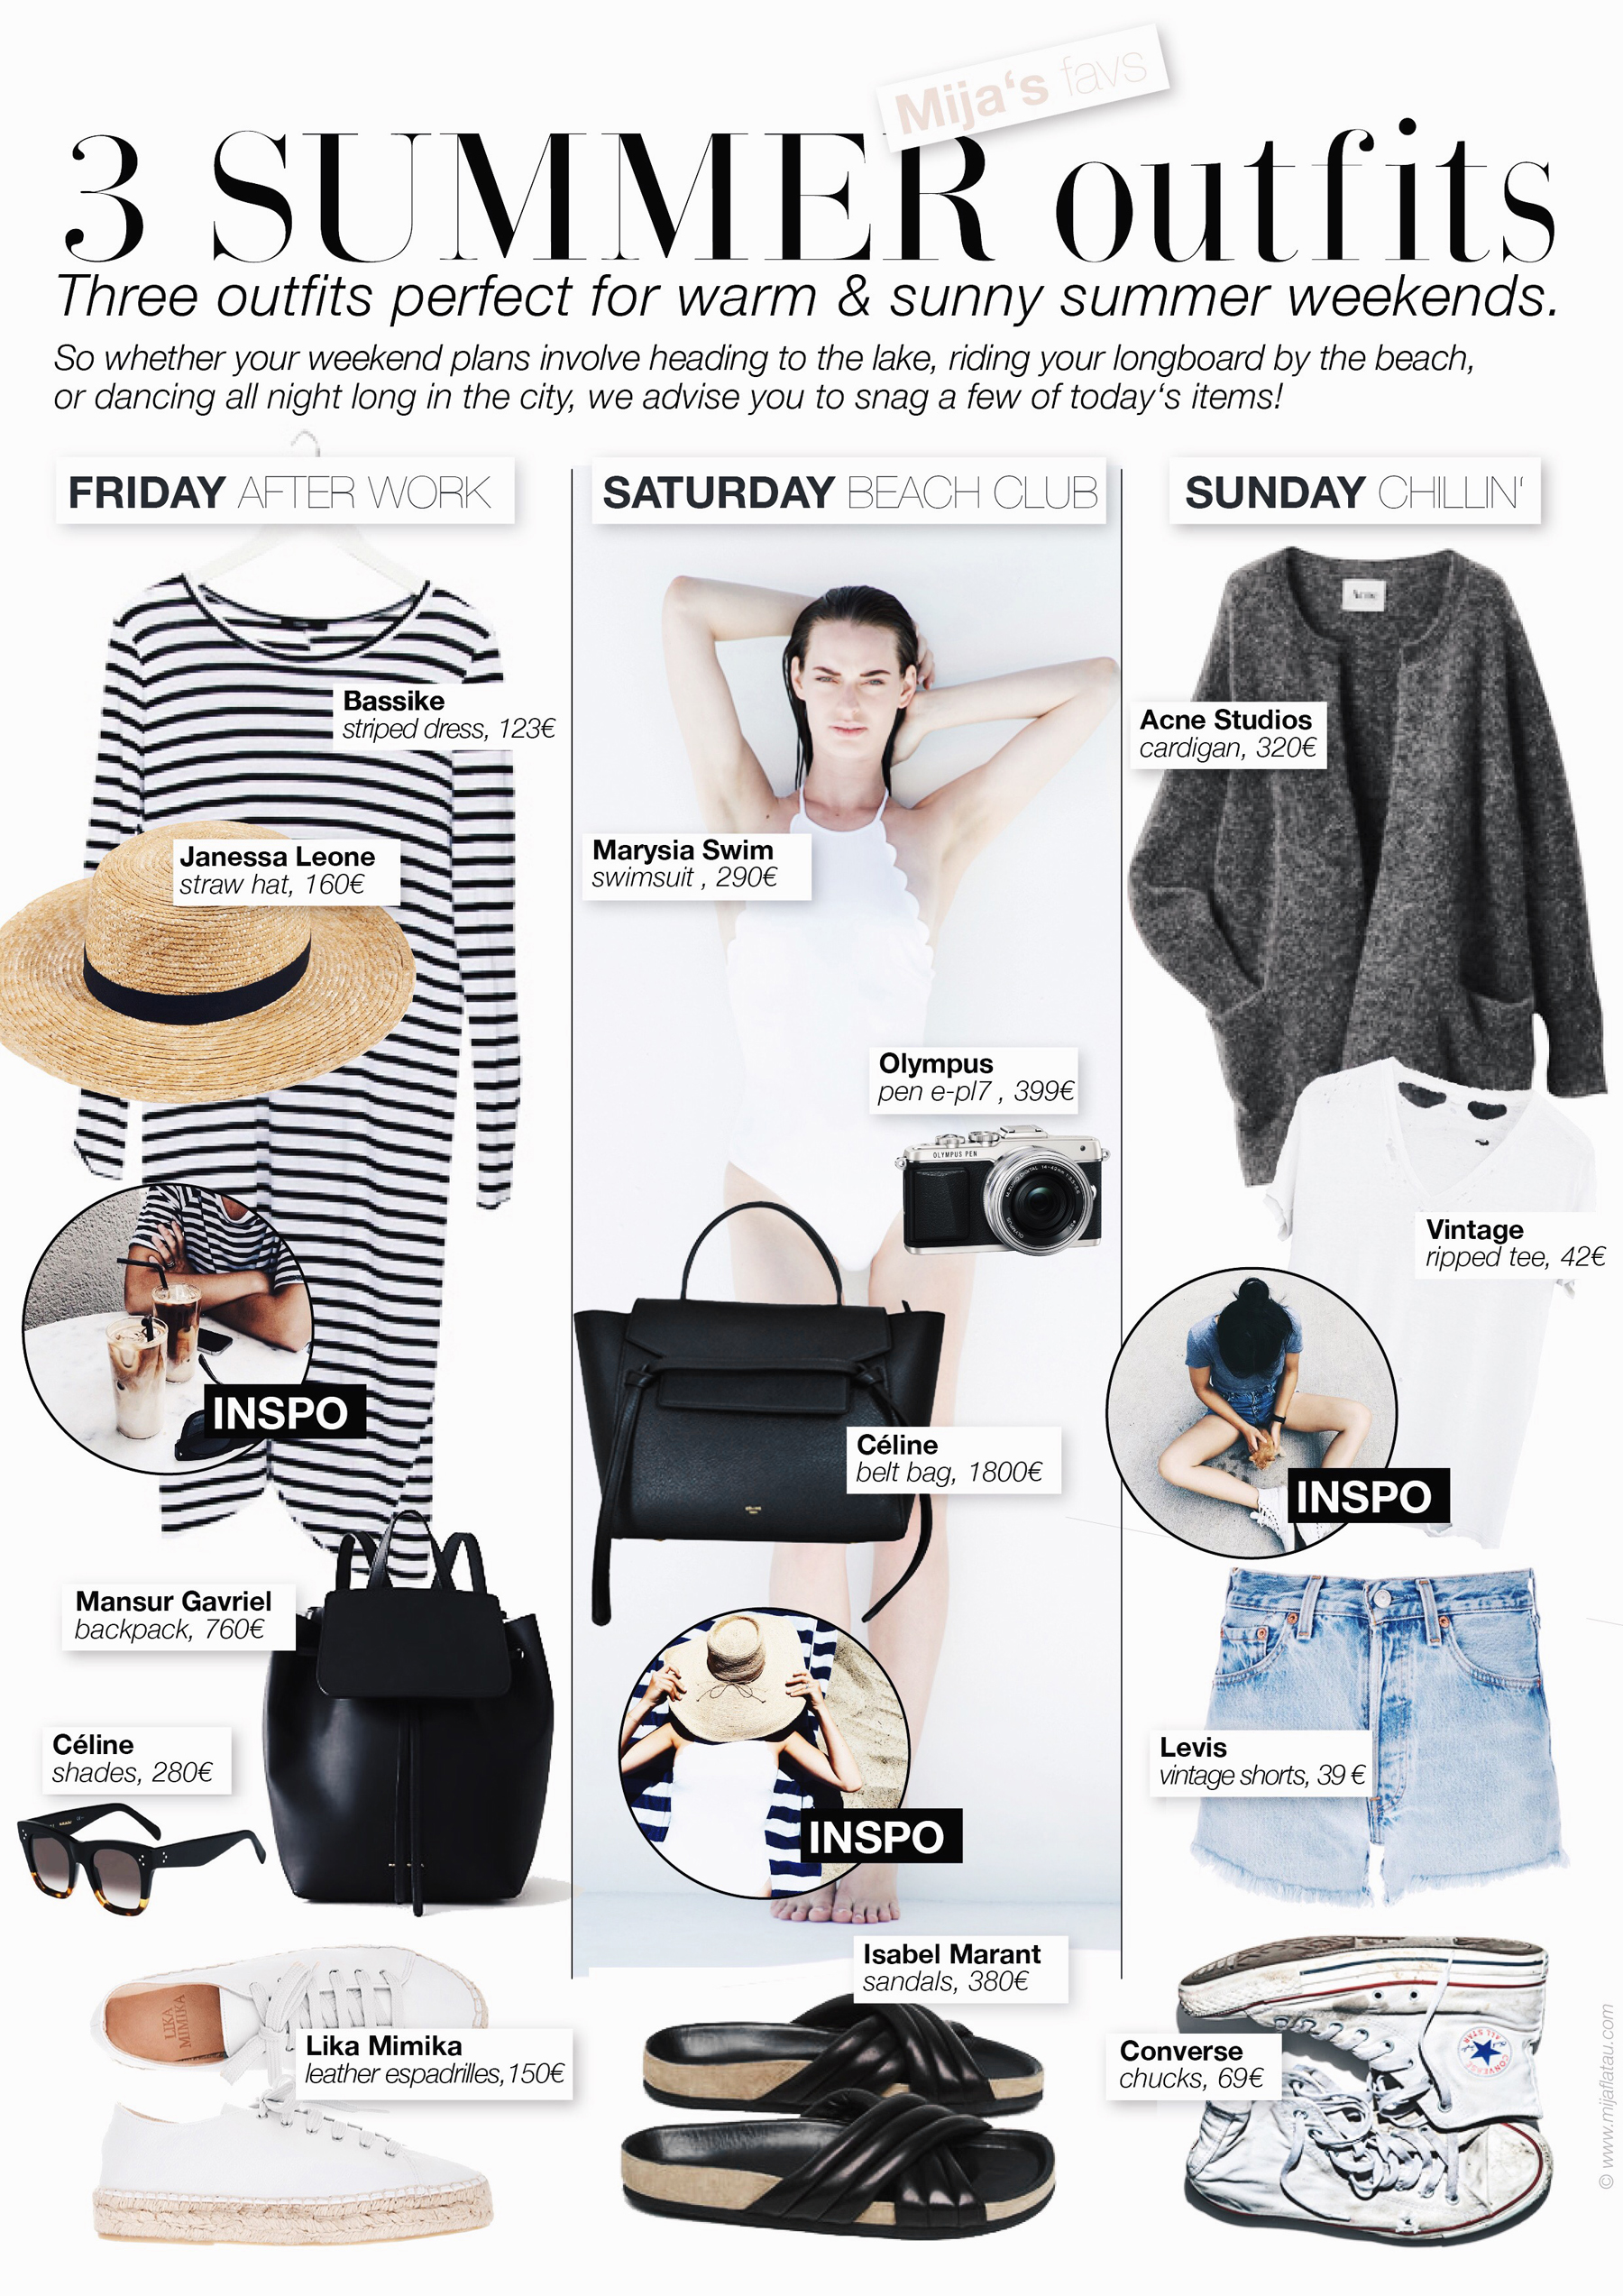 b3245445a2d 3 OUTFITS FOR SUMMER WEEKENDS - Mija